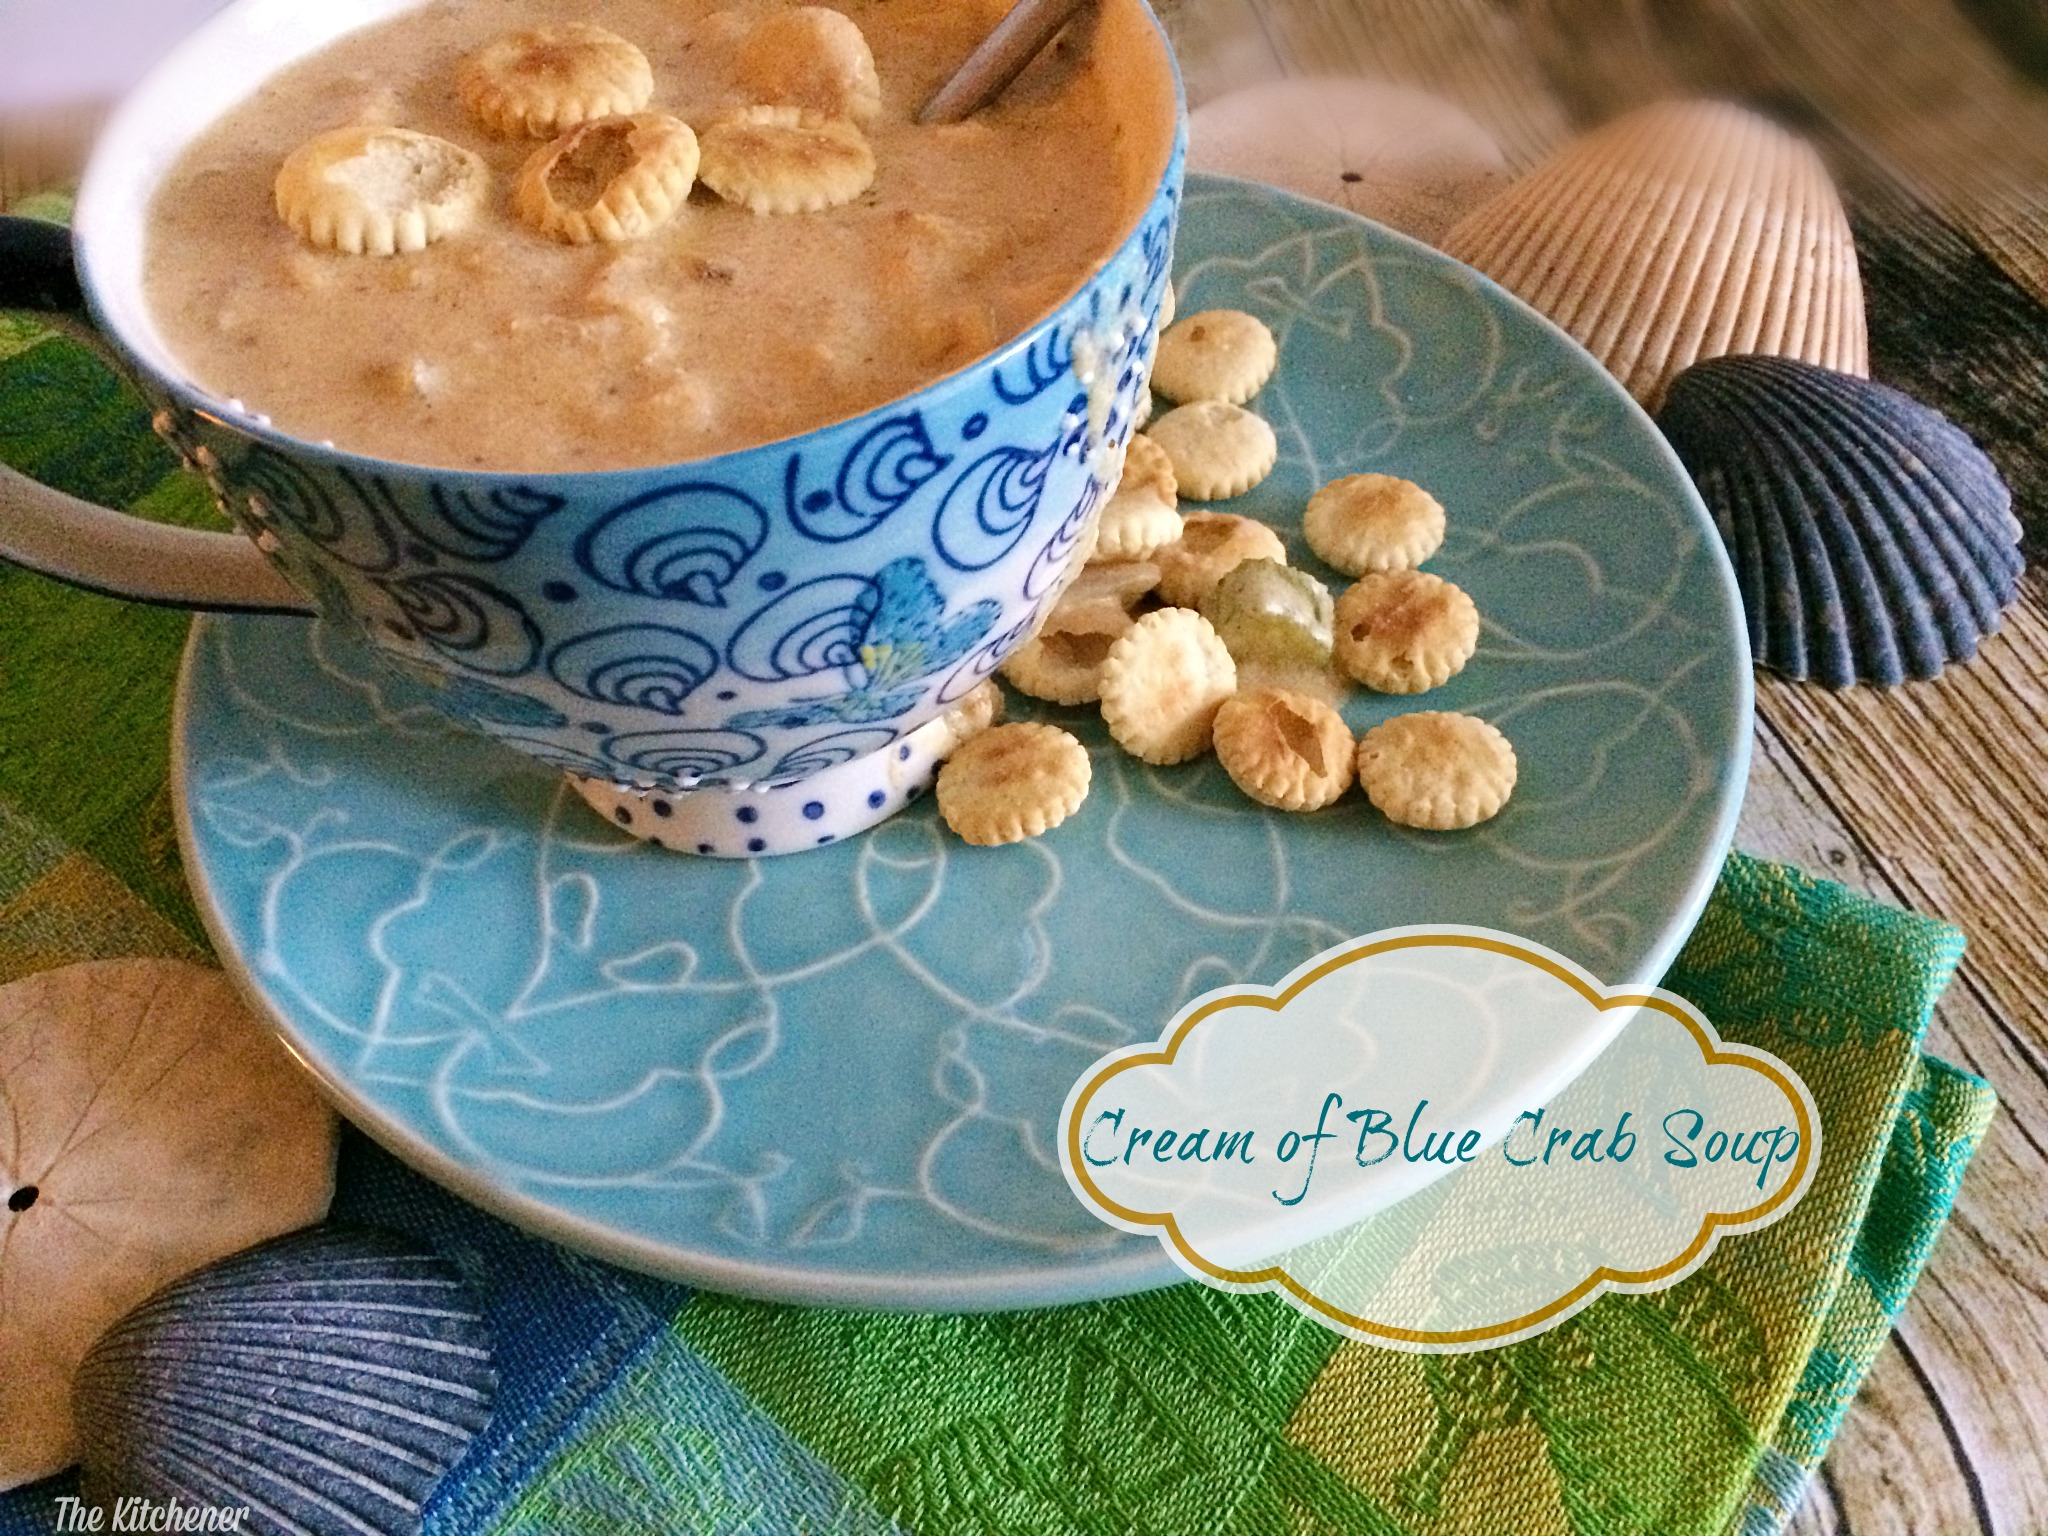 Cream of blue crab soup